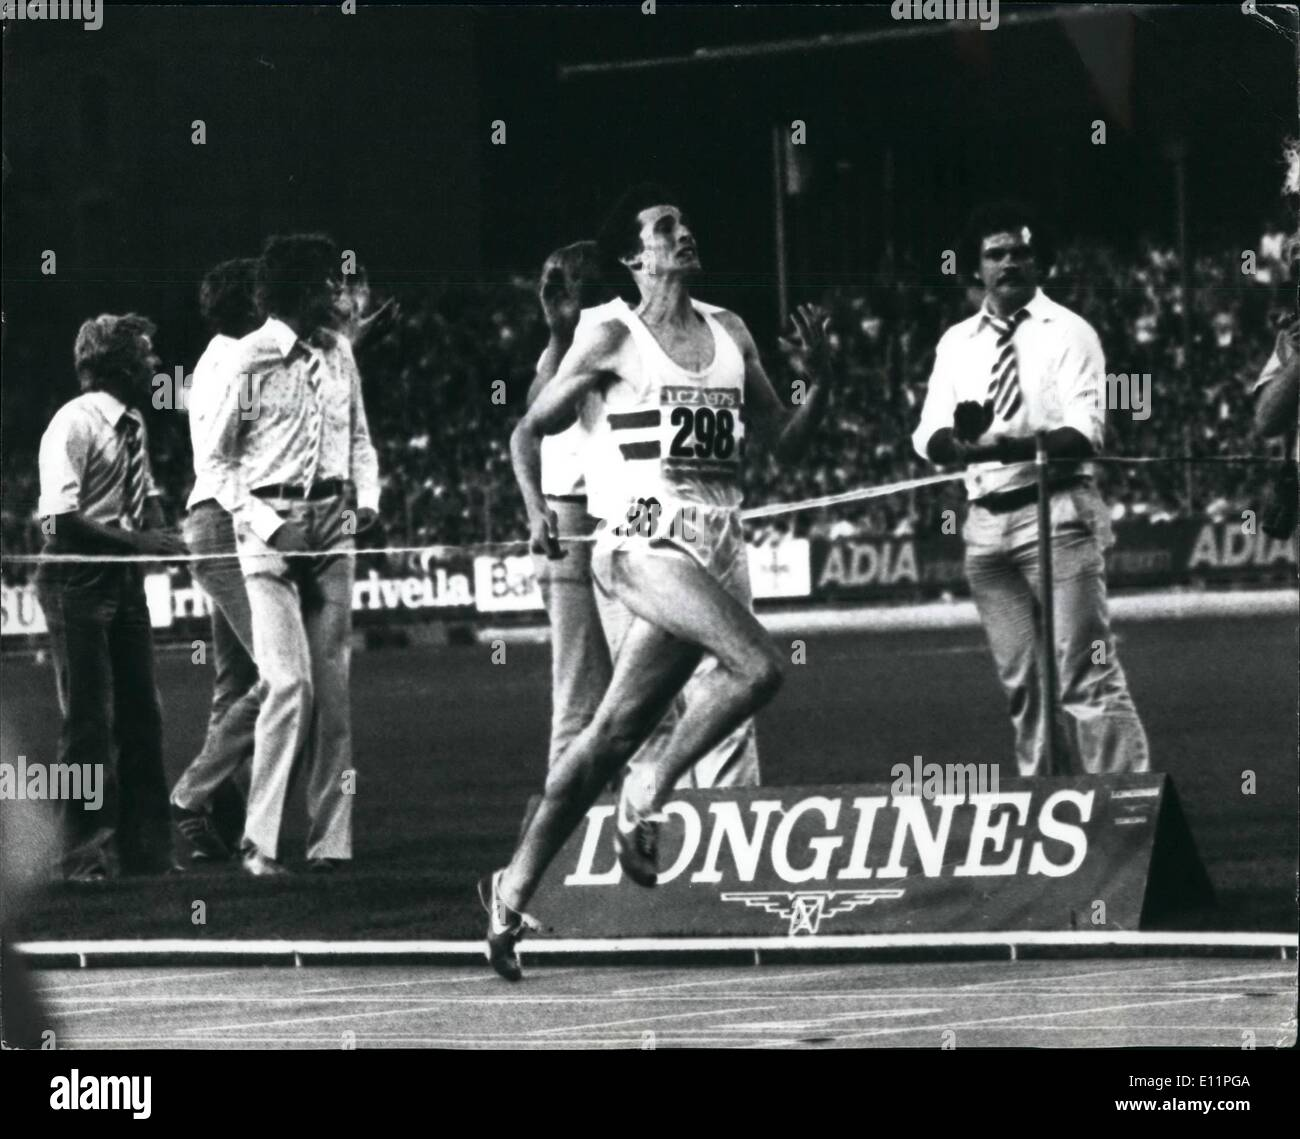 Aug. 16, 1979 - Sebastian Coe Smashes the World 1500 Metres Record in Zurich. For the third time in 41 days, 22 years old Sebastian Coe broke a world record, in Zurich las night he beat an International field by 70 yards for a time of 3 minutes 32.03 secs to clip almost a fifth of a second of the old record set by Tanzania's Filbert Bayi five years ago. He already holds the world record for the 800 metres, and the one mile. No man in history has ever held all three records simultaneously until now. OPS: Sebastian Coe comes up to the finish in the 1500 metres in Zurich last night. - Stock Image